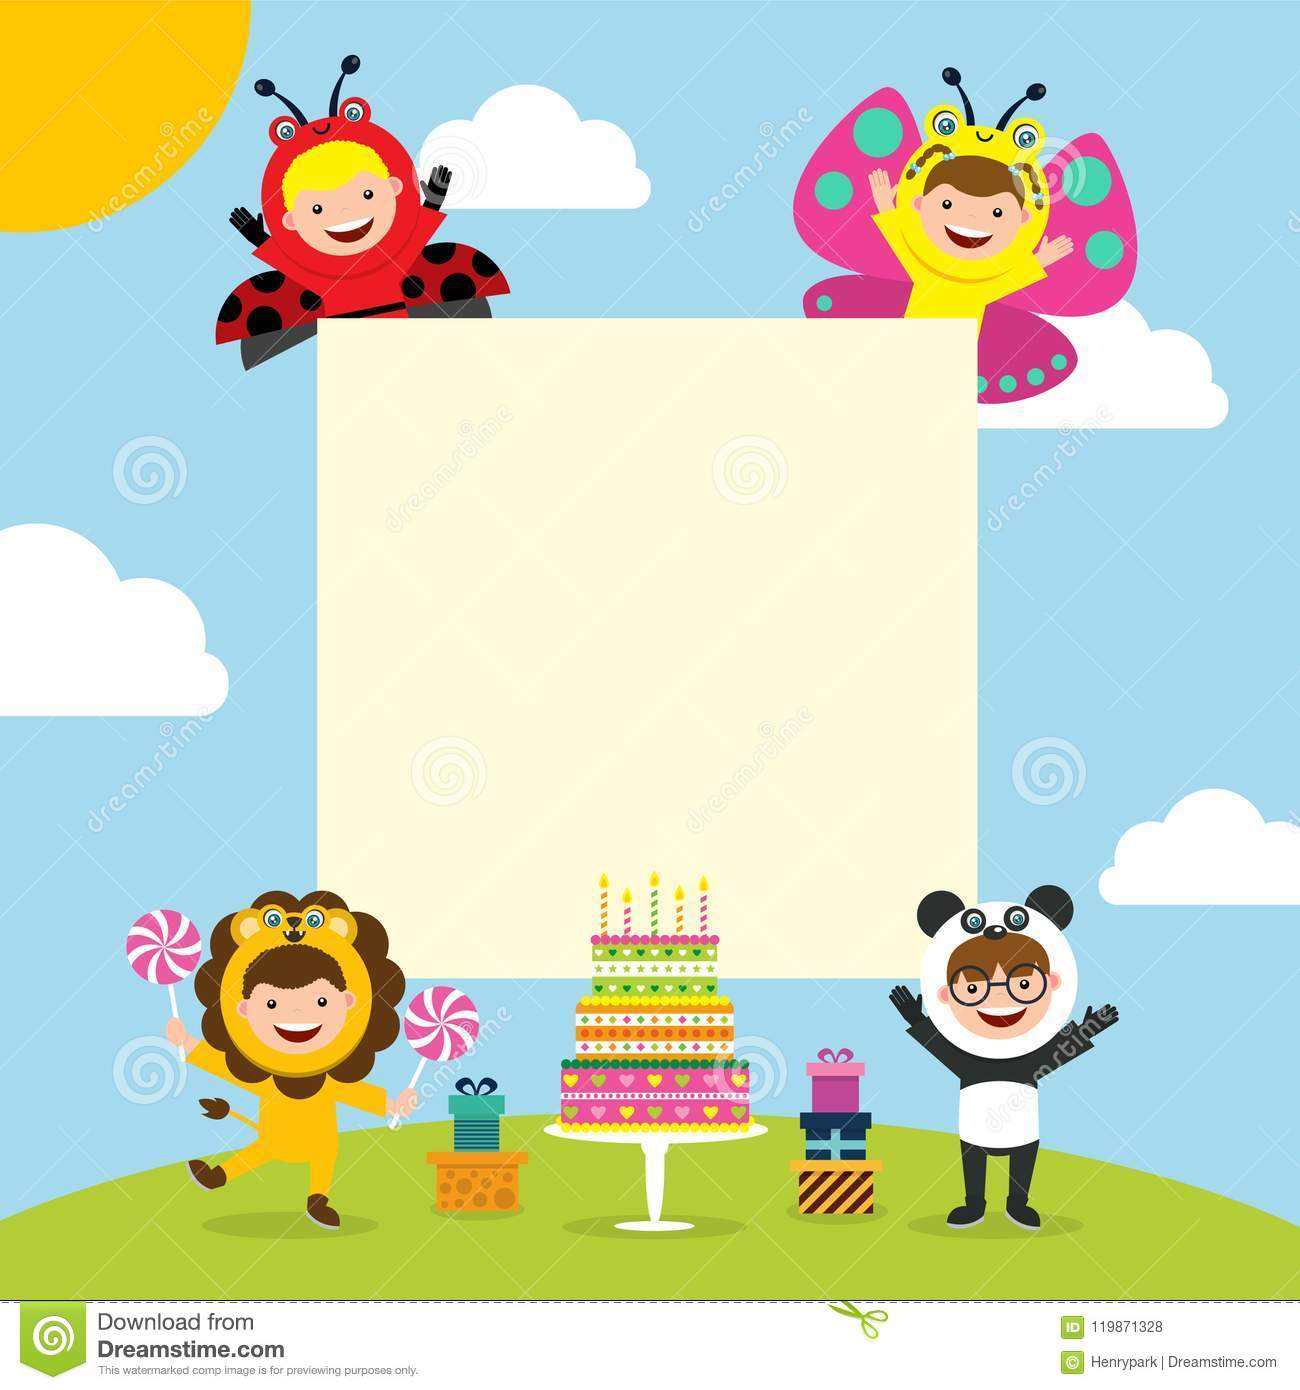 Swell Birthday Card With Kids In Animal Costume Stock Vector Funny Birthday Cards Online Fluifree Goldxyz